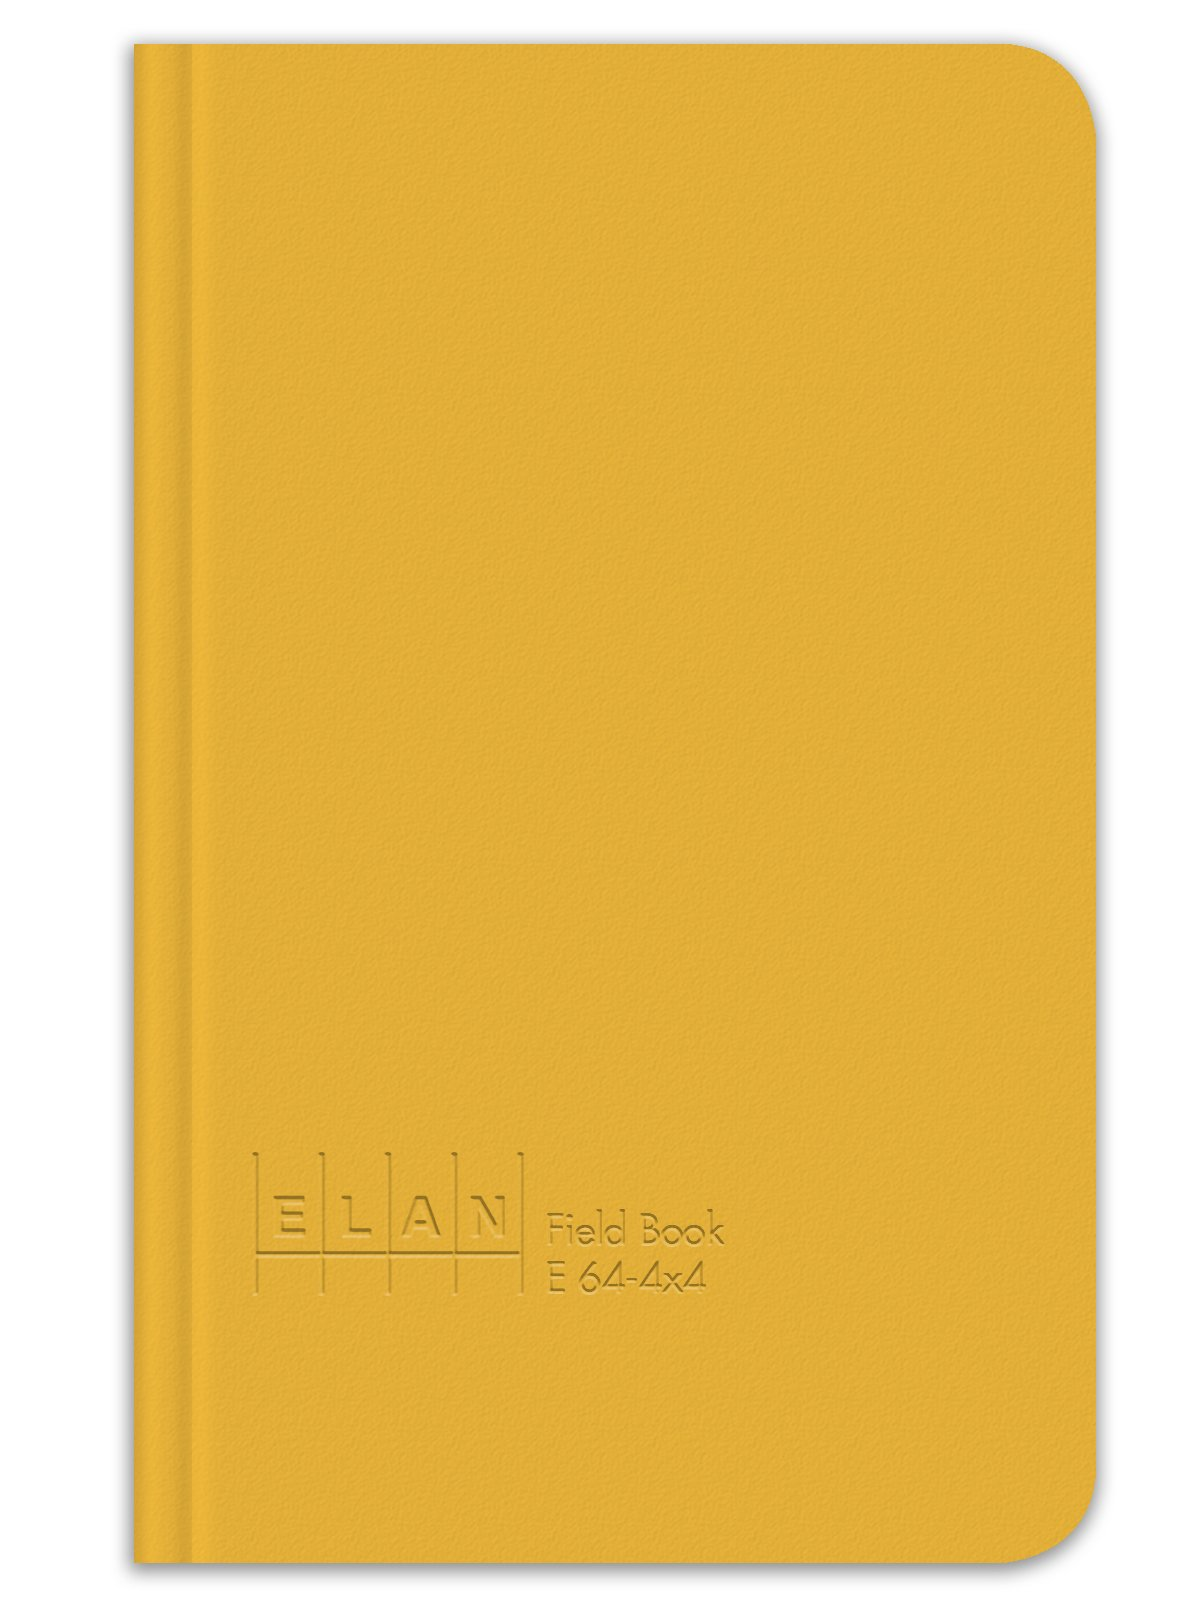 Elan Publishing Company E64-4x4 Field Surveying Book 4 ⅝ x 7 ¼, Yellow Cover (Pack of 6) by Elan Publishing Company